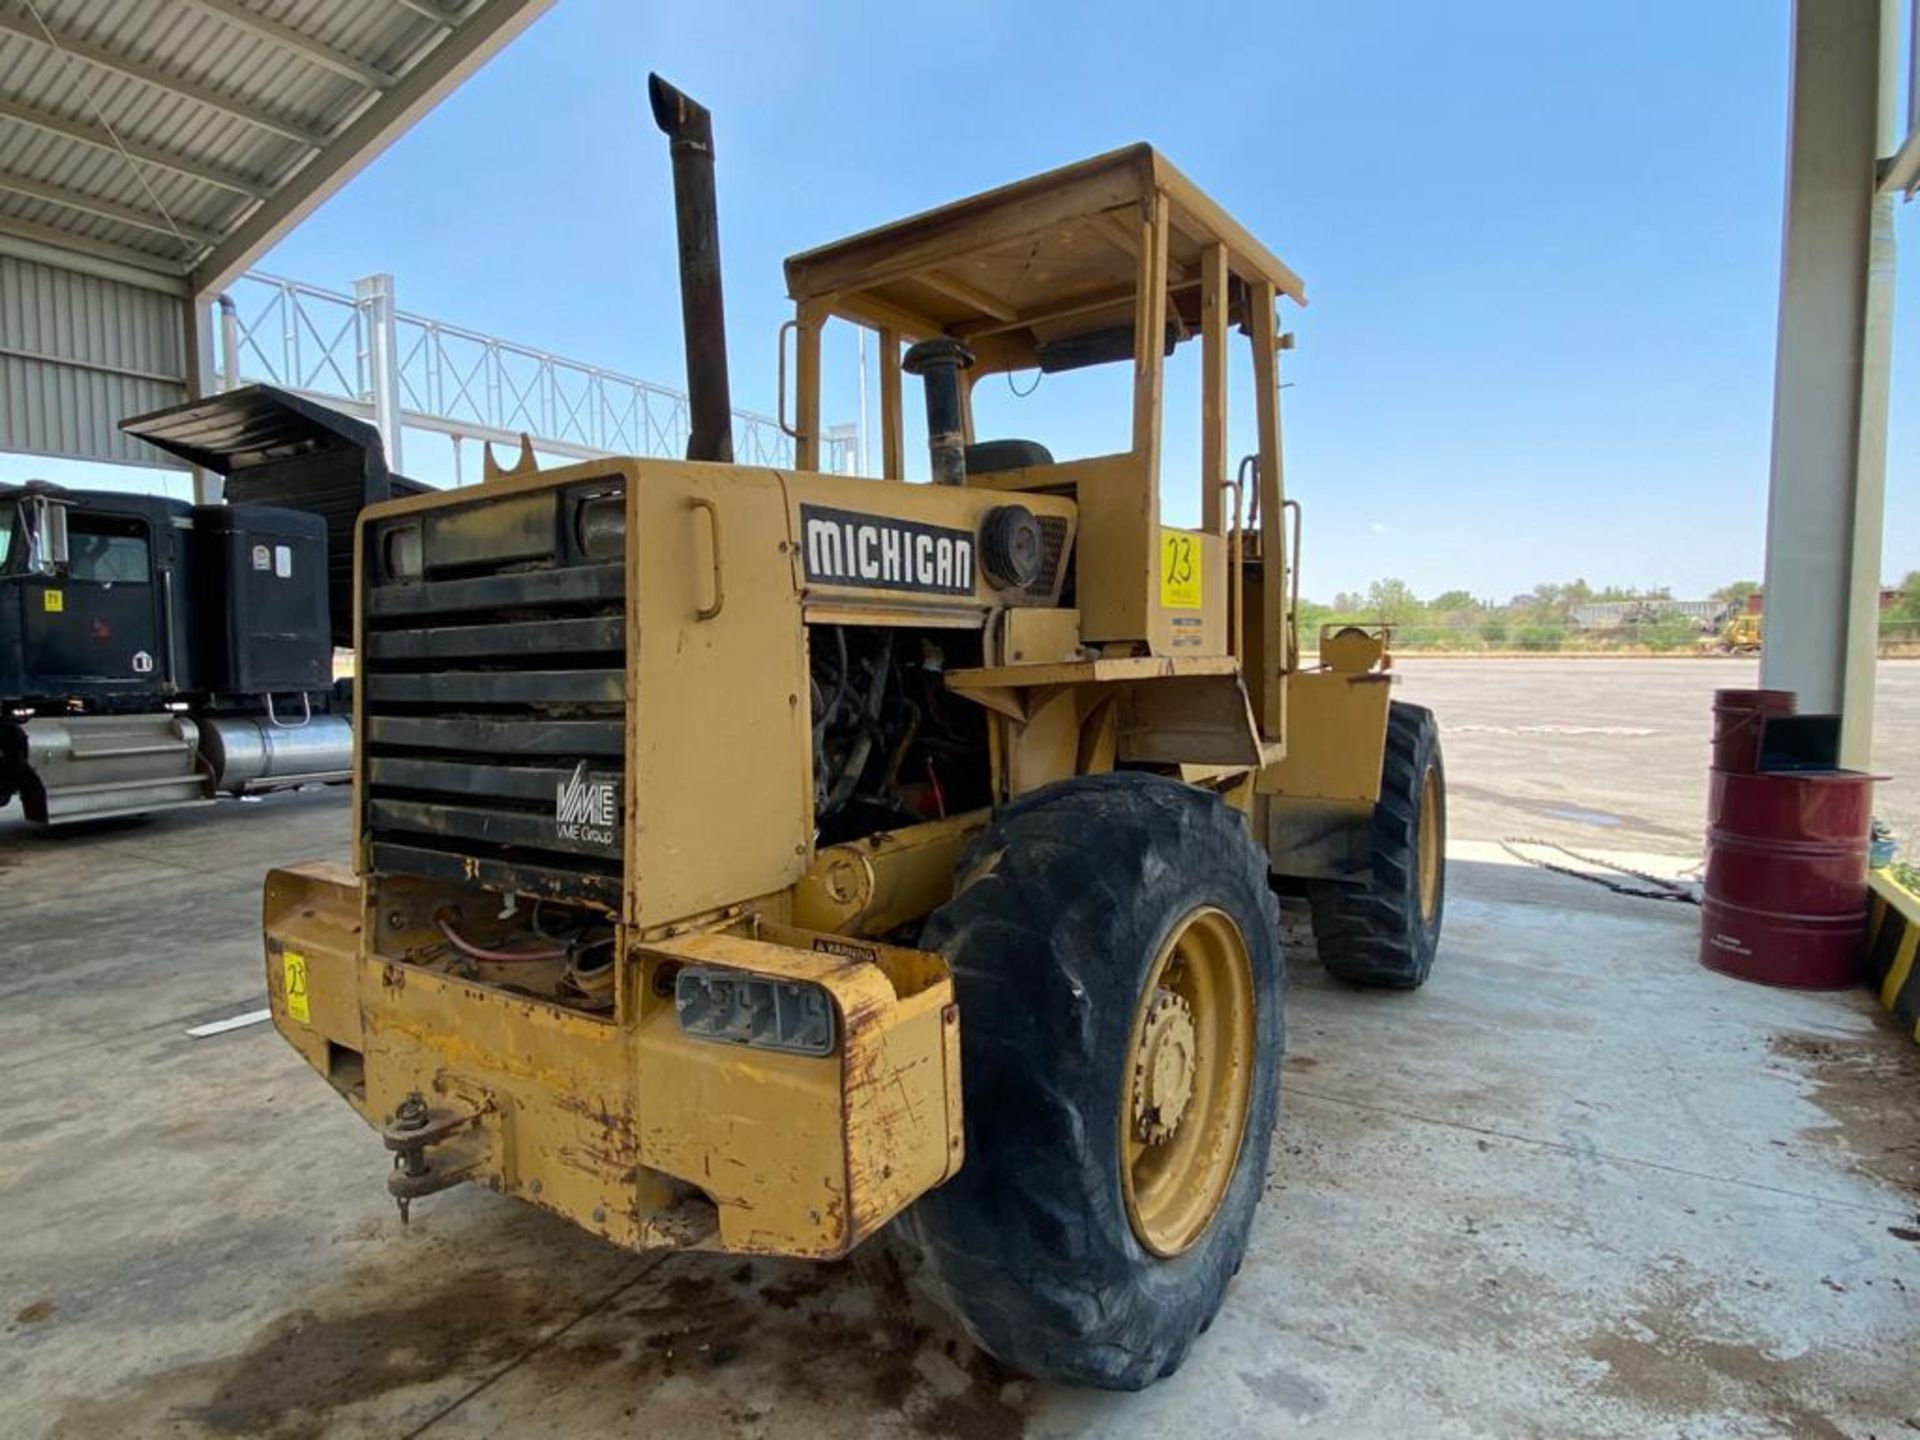 Volvo BM TYPE L 30 Michigan Front Loder, automatic transmission - Image 21 of 53